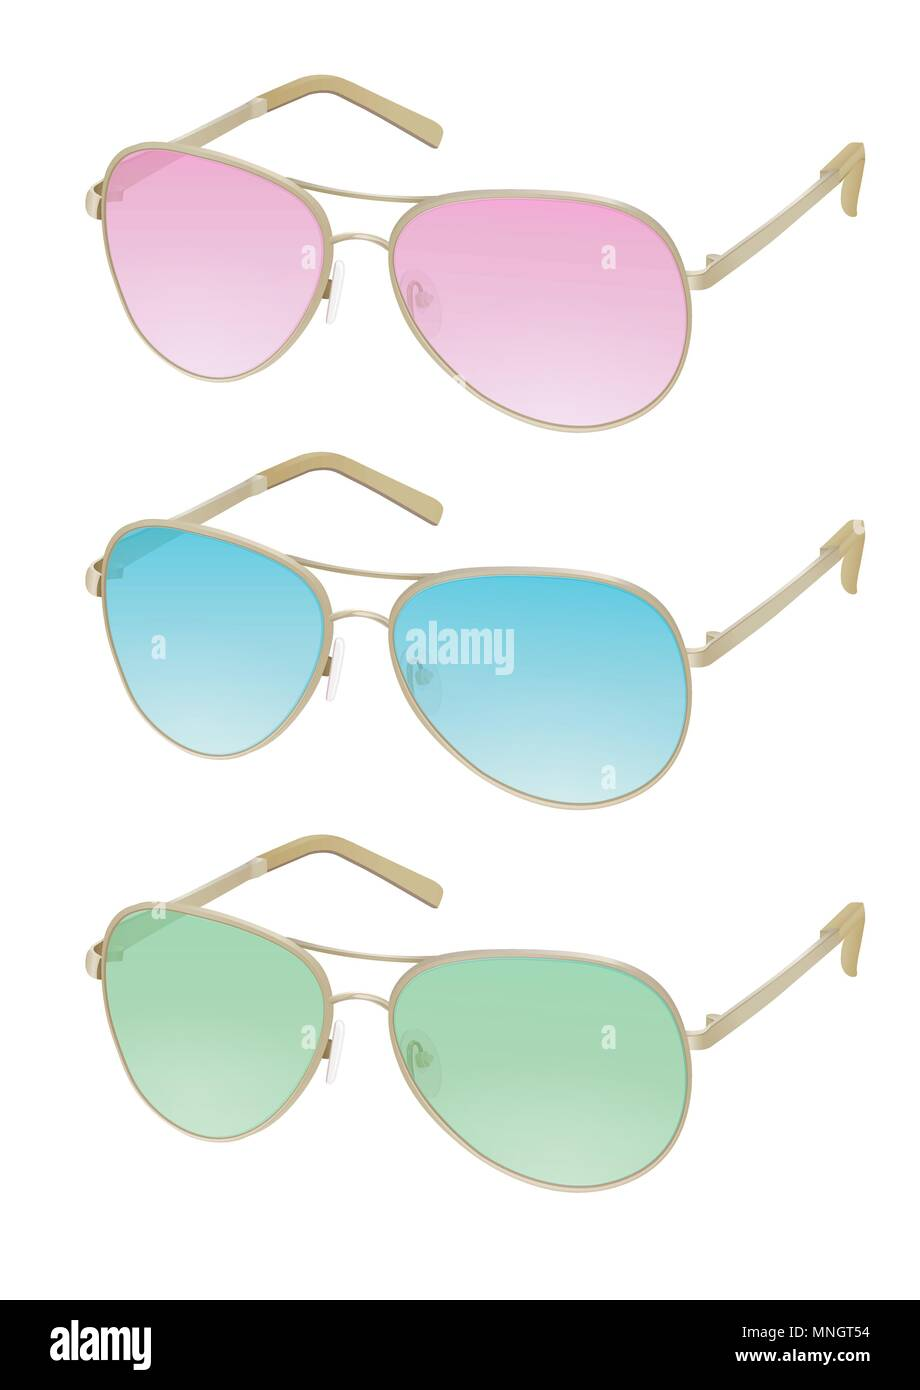 afc76e929f1 Pink Glasses Stock Vector Images - Alamy